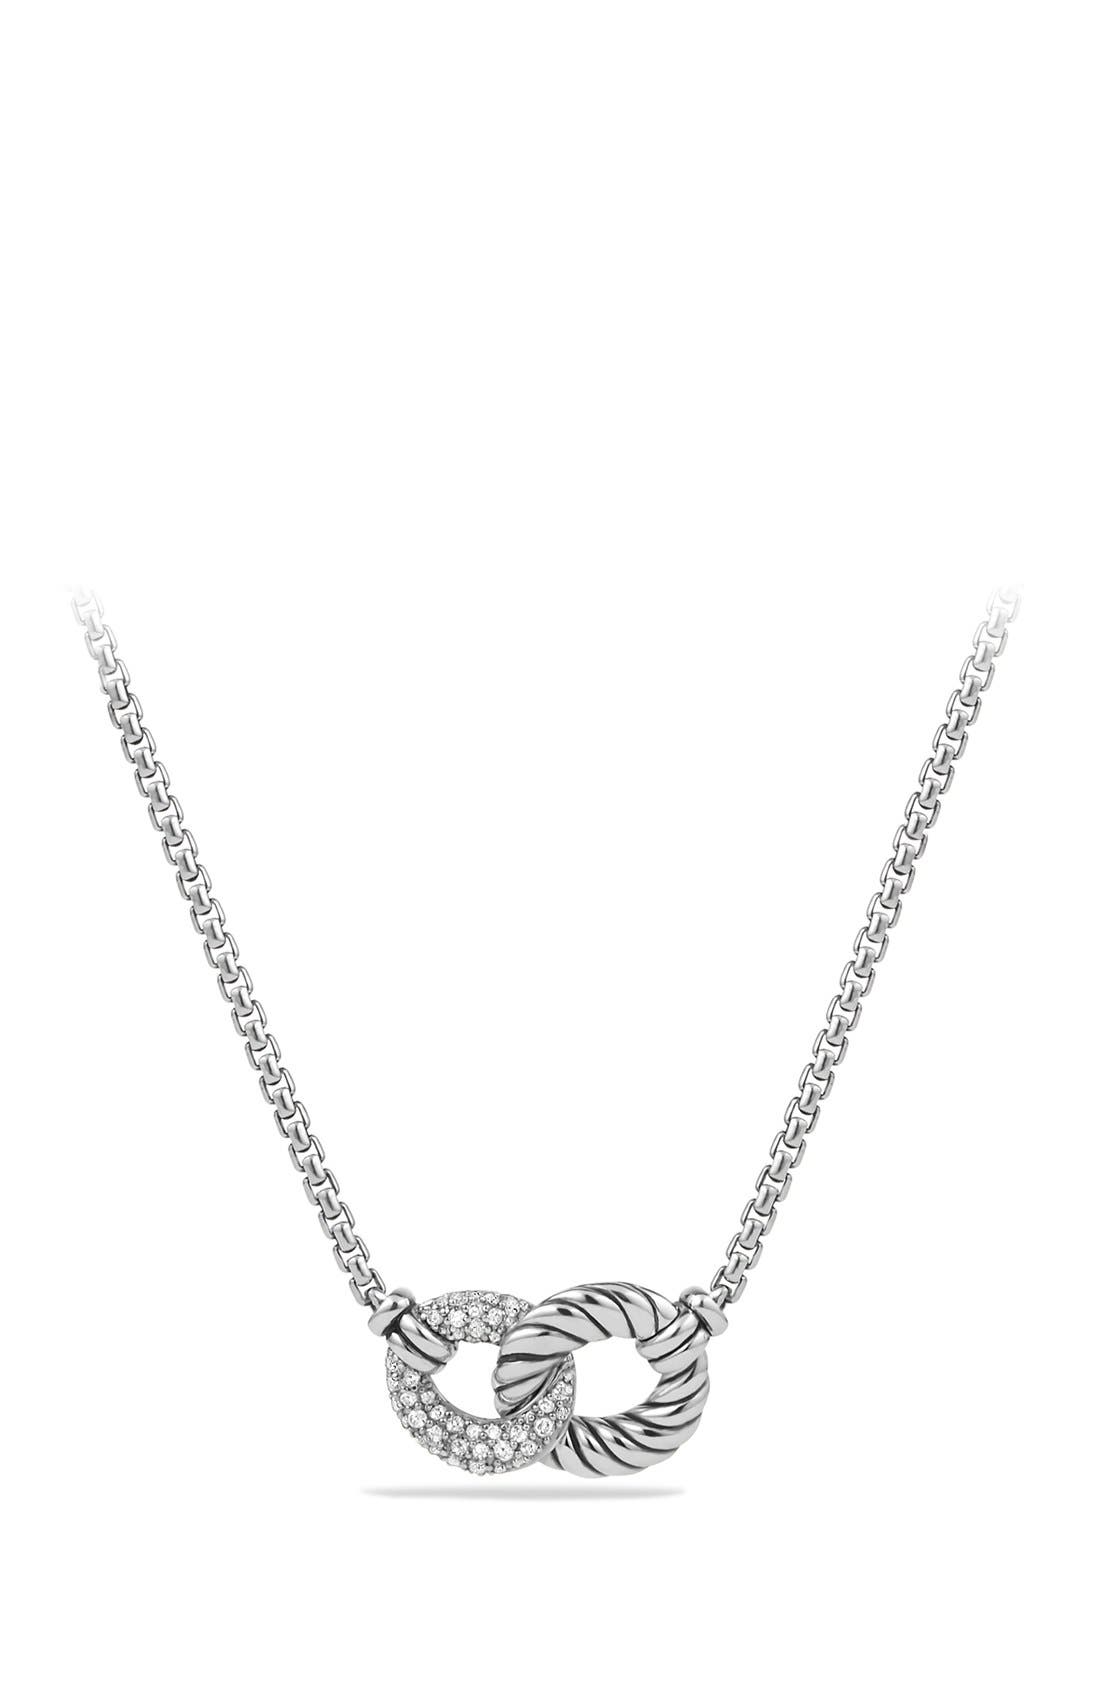 Alternate Image 1 Selected - David Yurman 'Belmont' Necklace with Diamonds